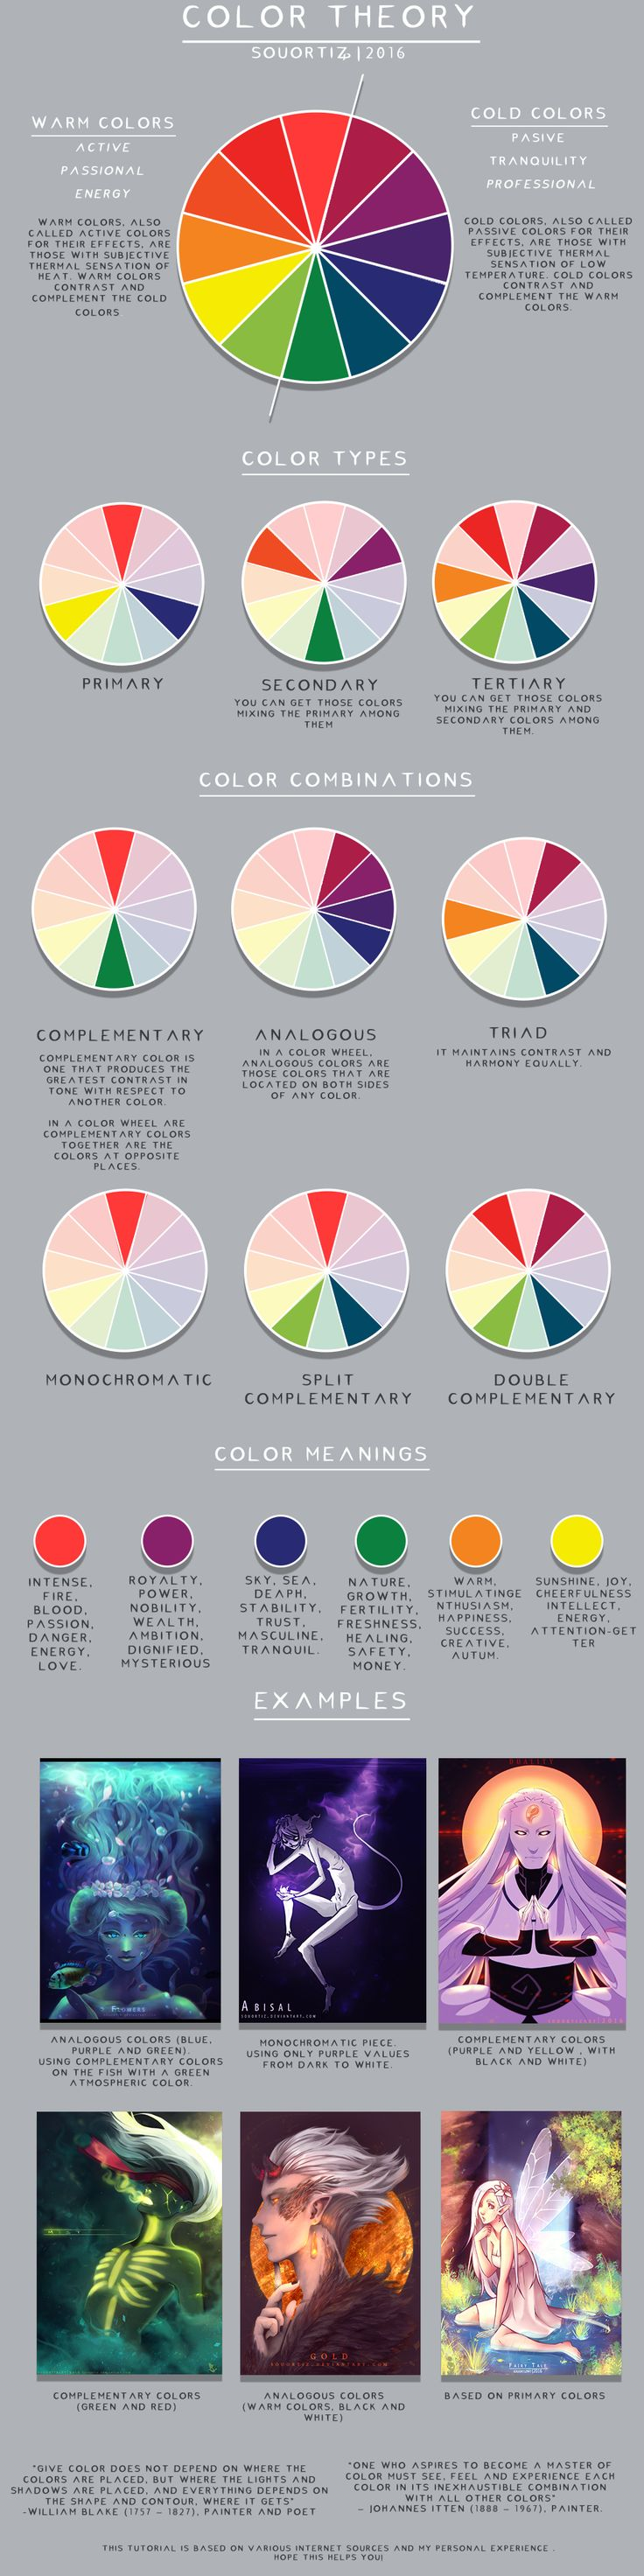 Best Color theory ideas on Pinterest